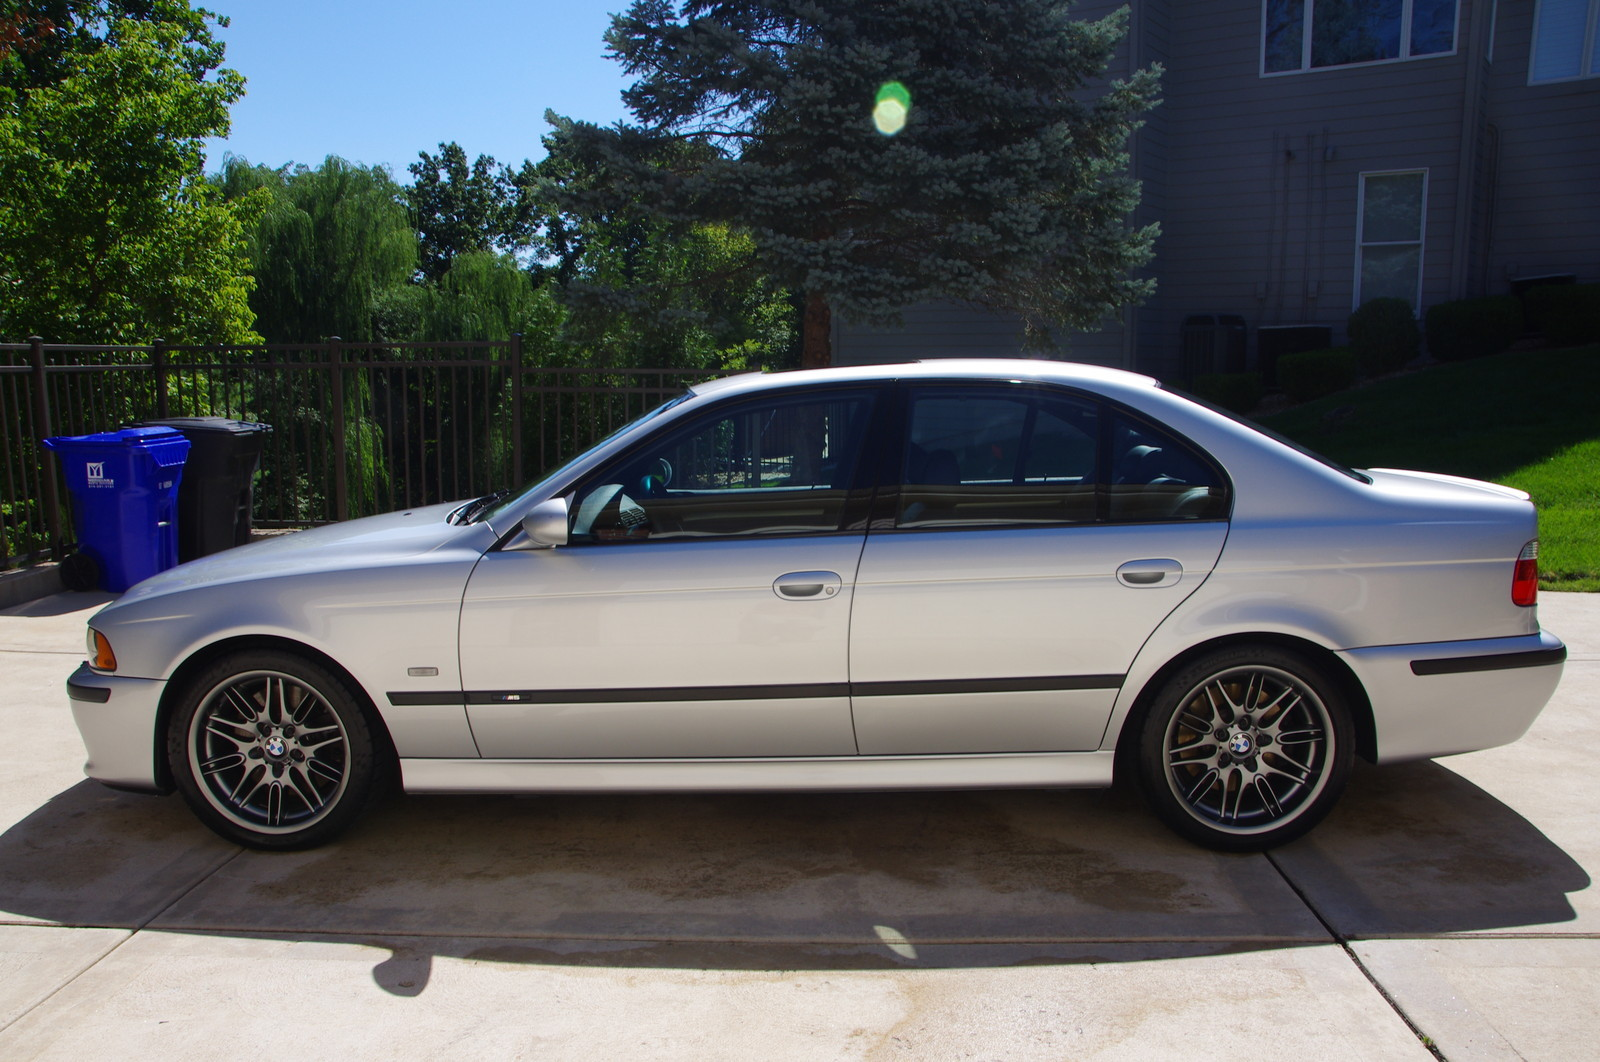 2002 BMW M5 | German Cars For Sale Blog